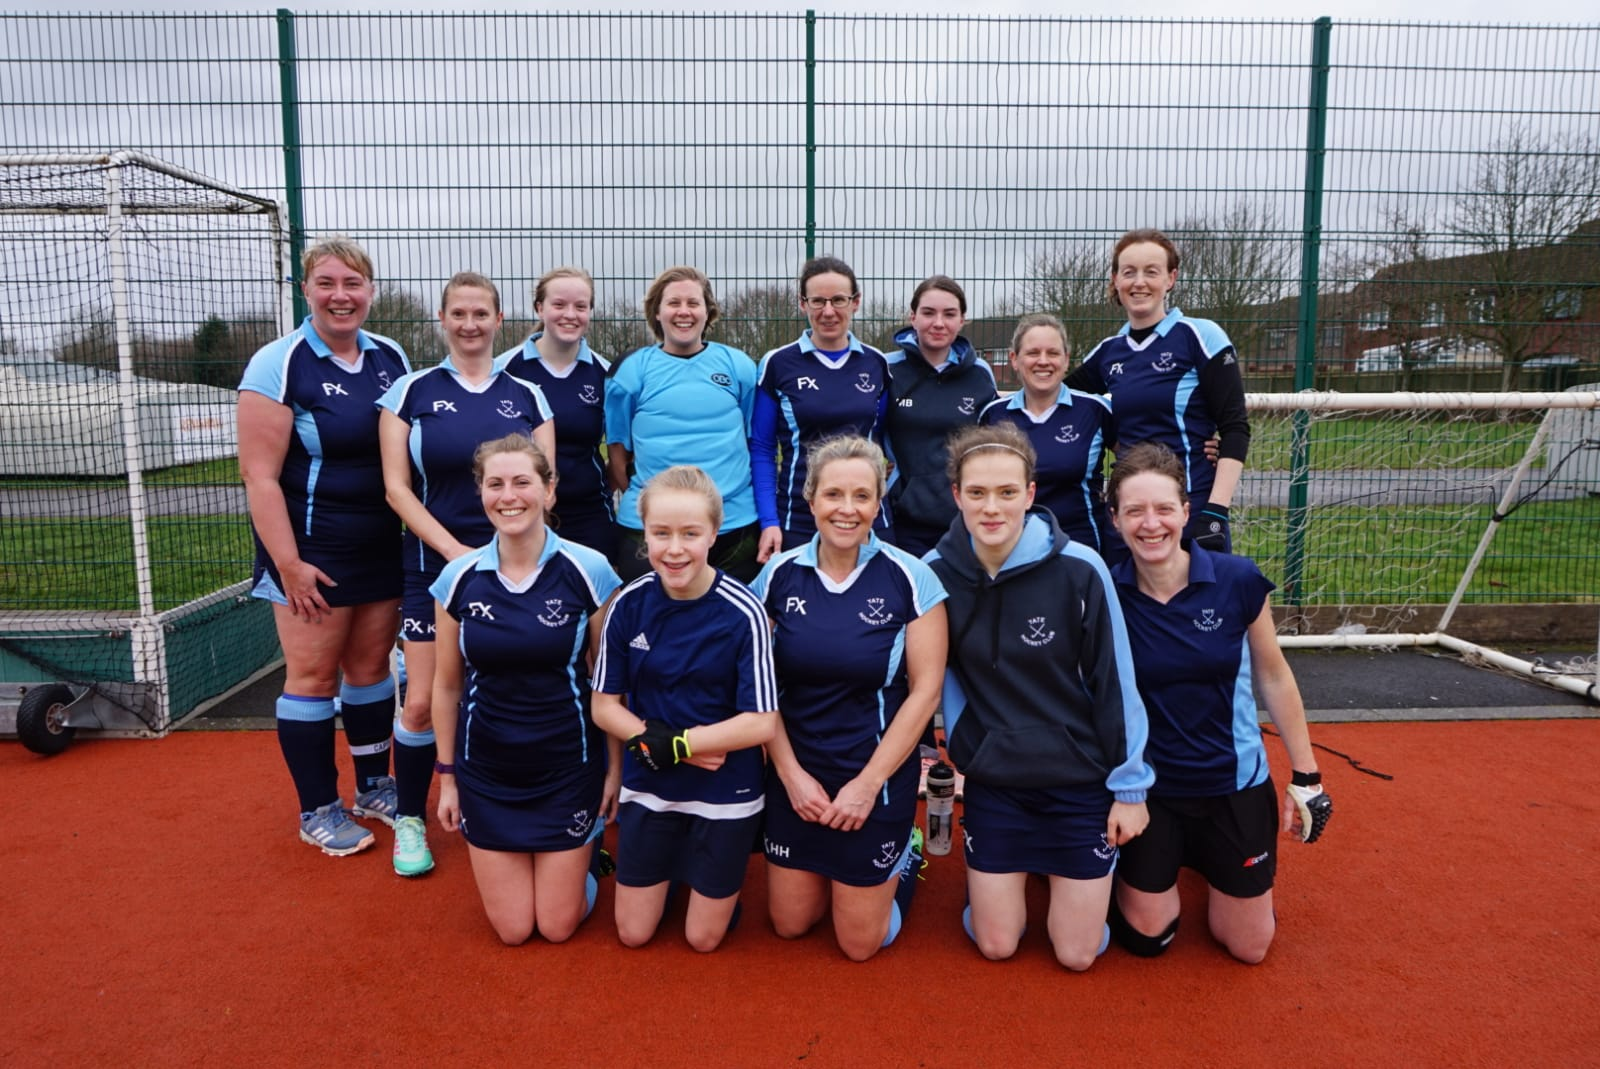 Ladies 3rd team following victory over O